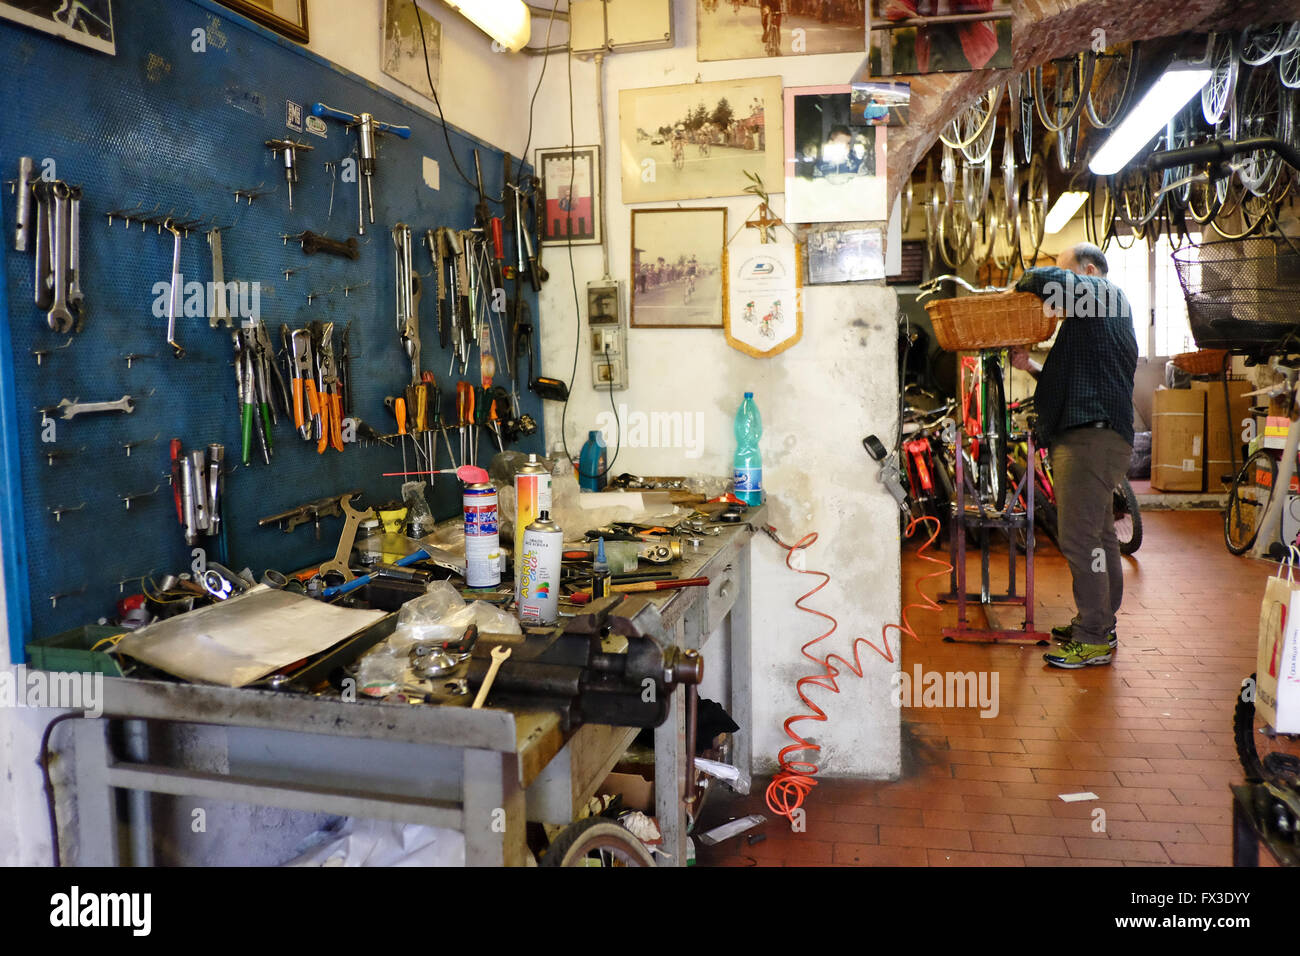 Interior of the cycle workshop of Poli in Lucca, Tuscany. Italy. Showing work bench and tools, mechanic and various - Stock Image